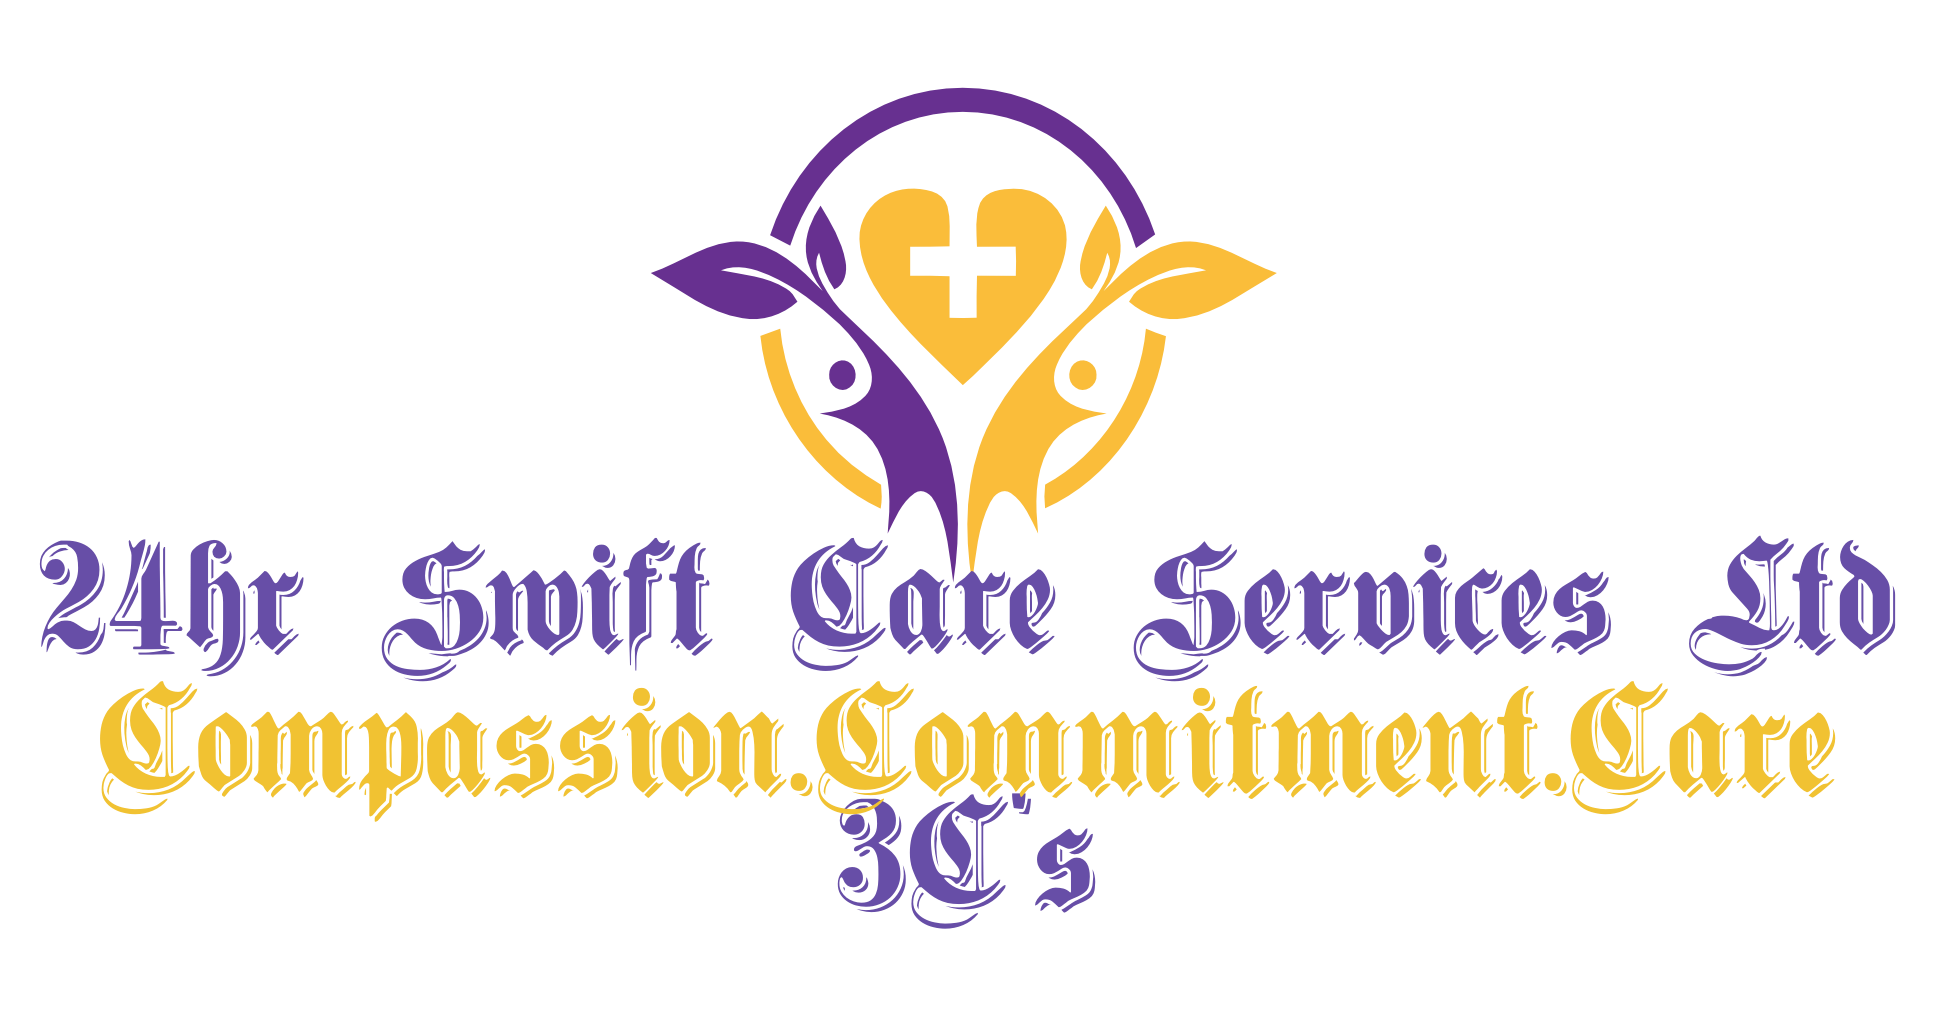 24hr Swift Care Services